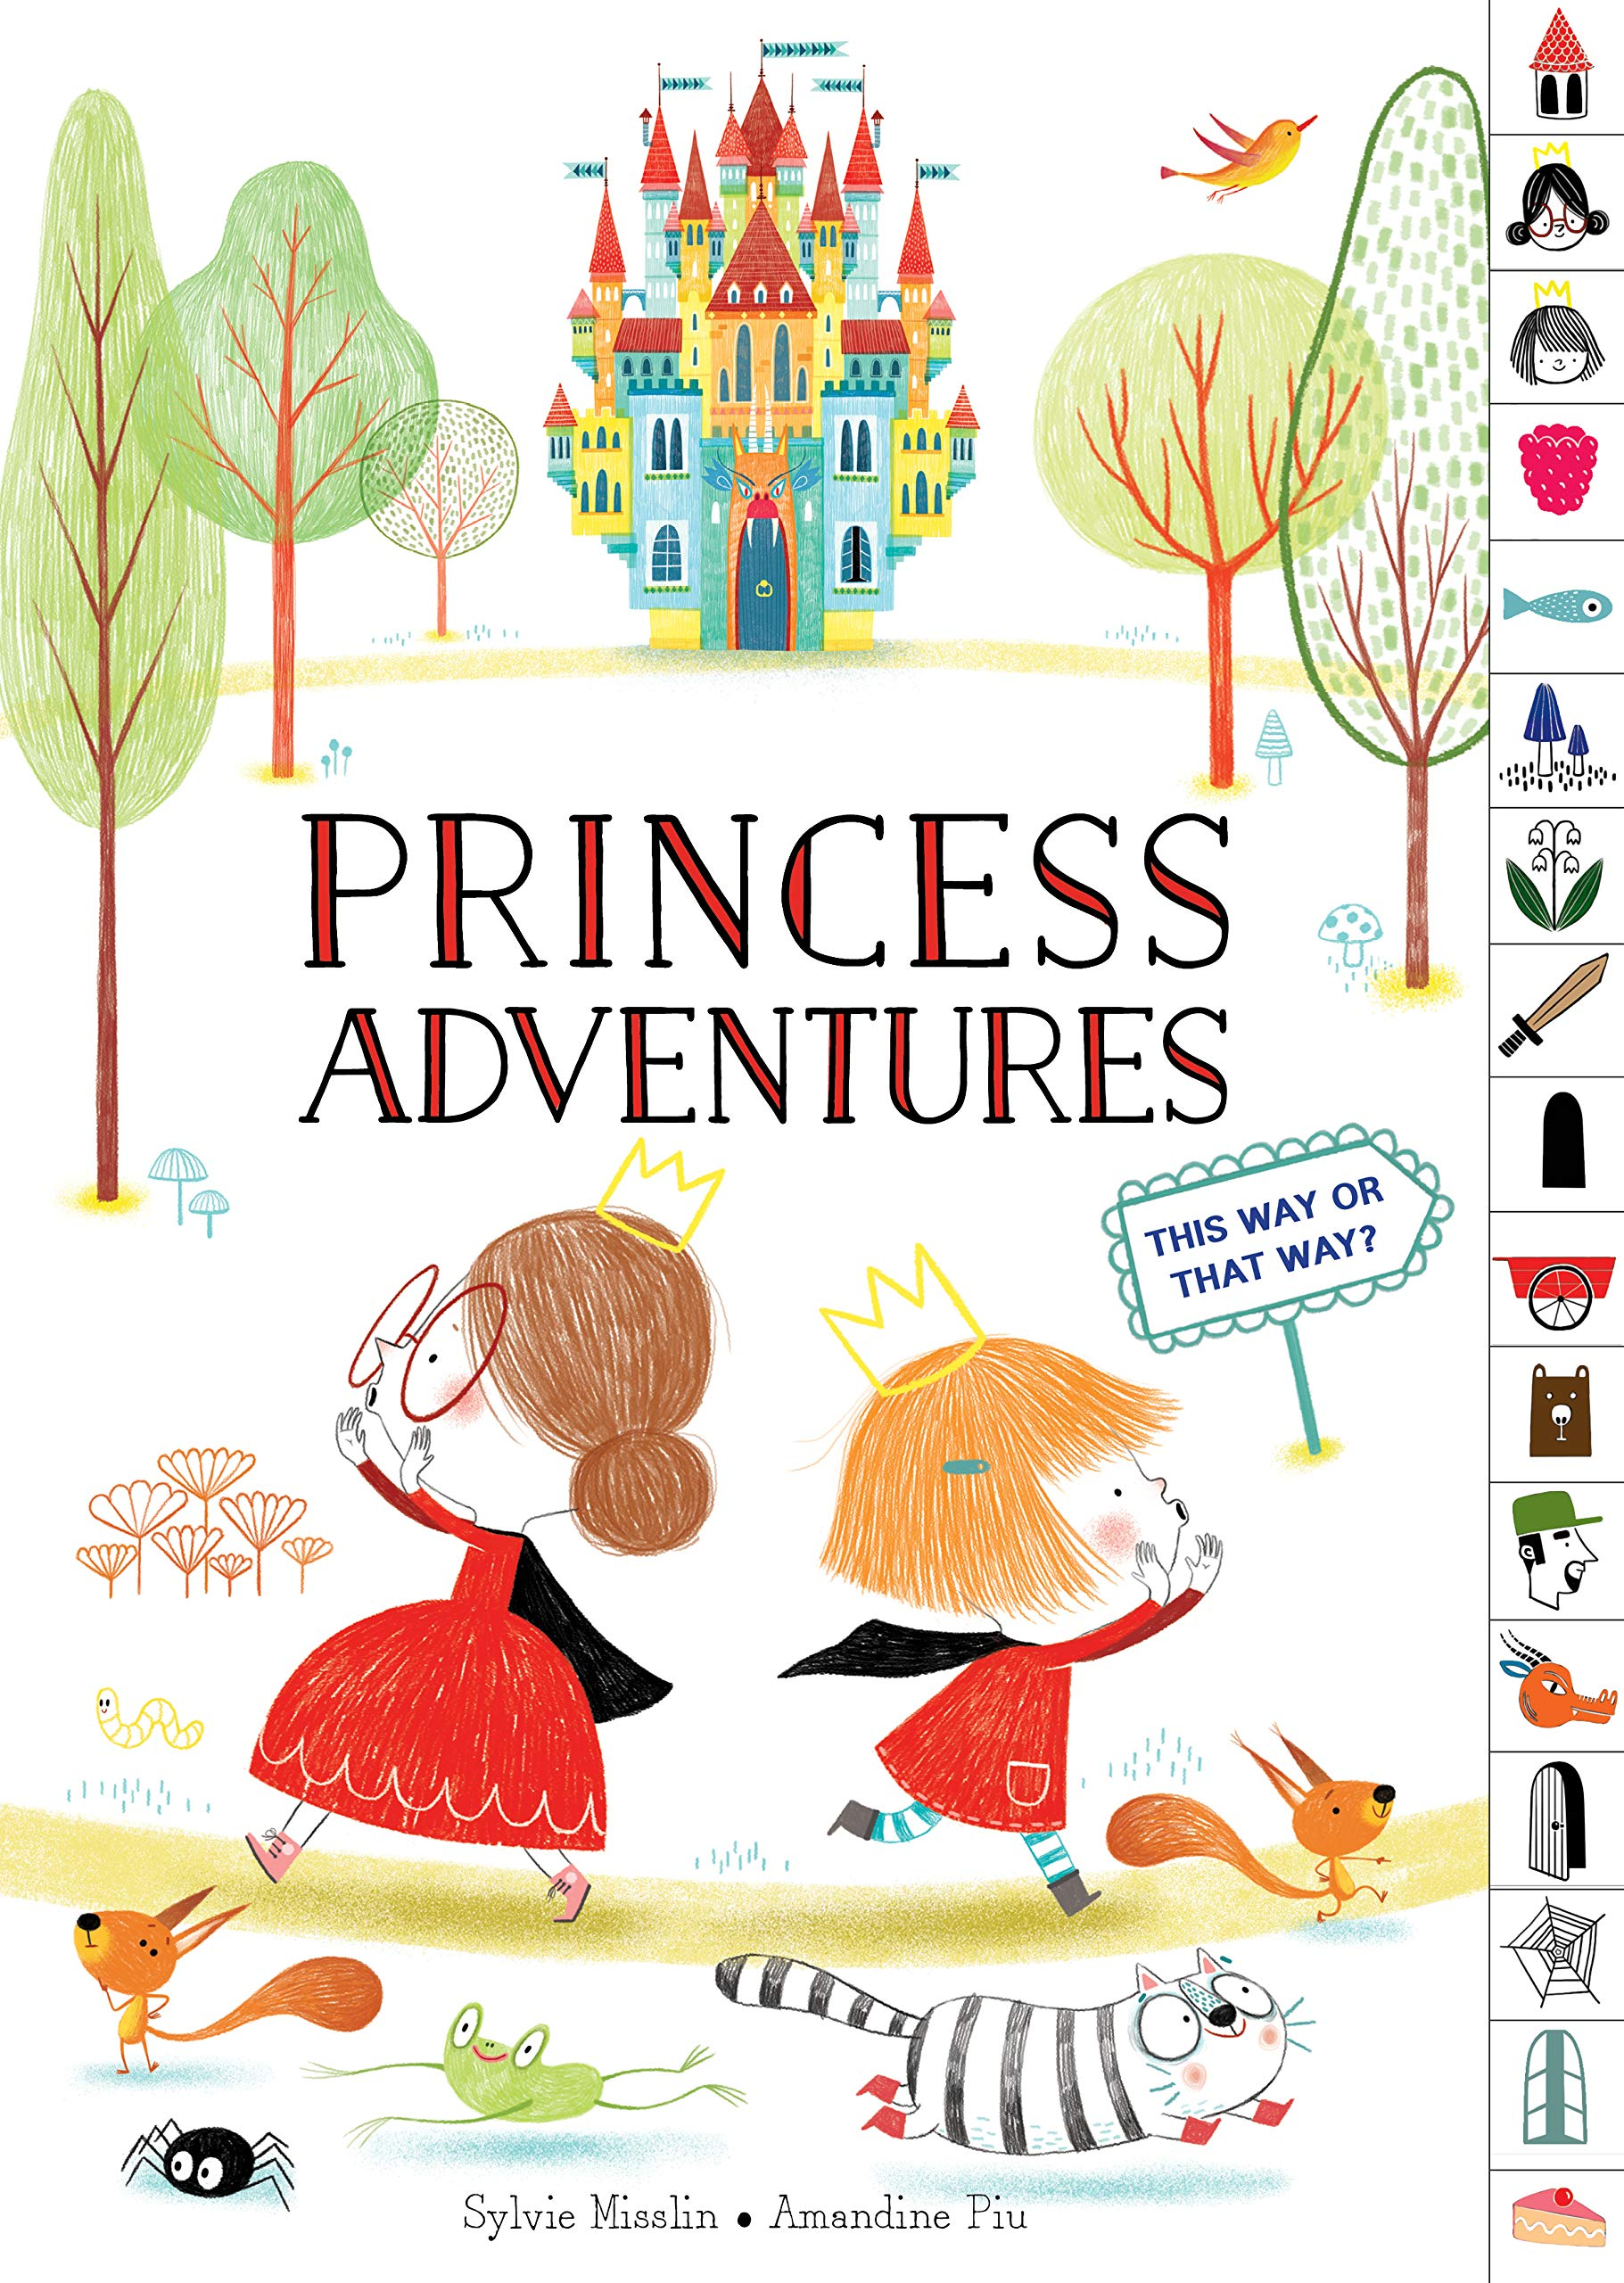 Princess Adventures: This Way or That Way? (tabbed find-your-way picture book)